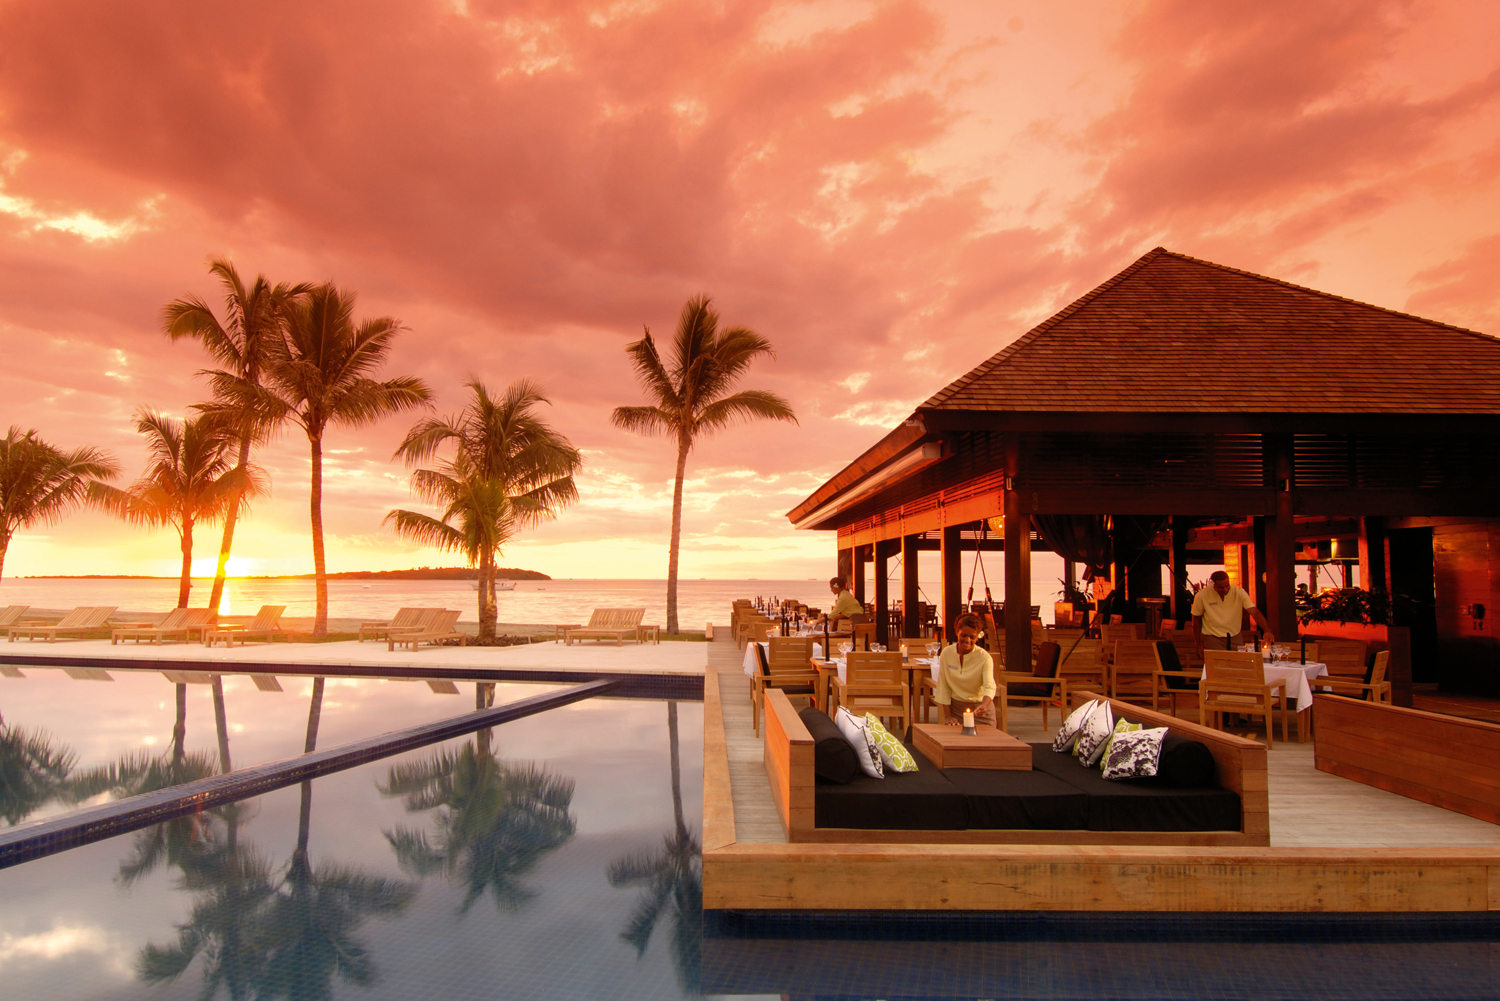 Fiji beach resort and spa luxury under 250 for Sunset lodge